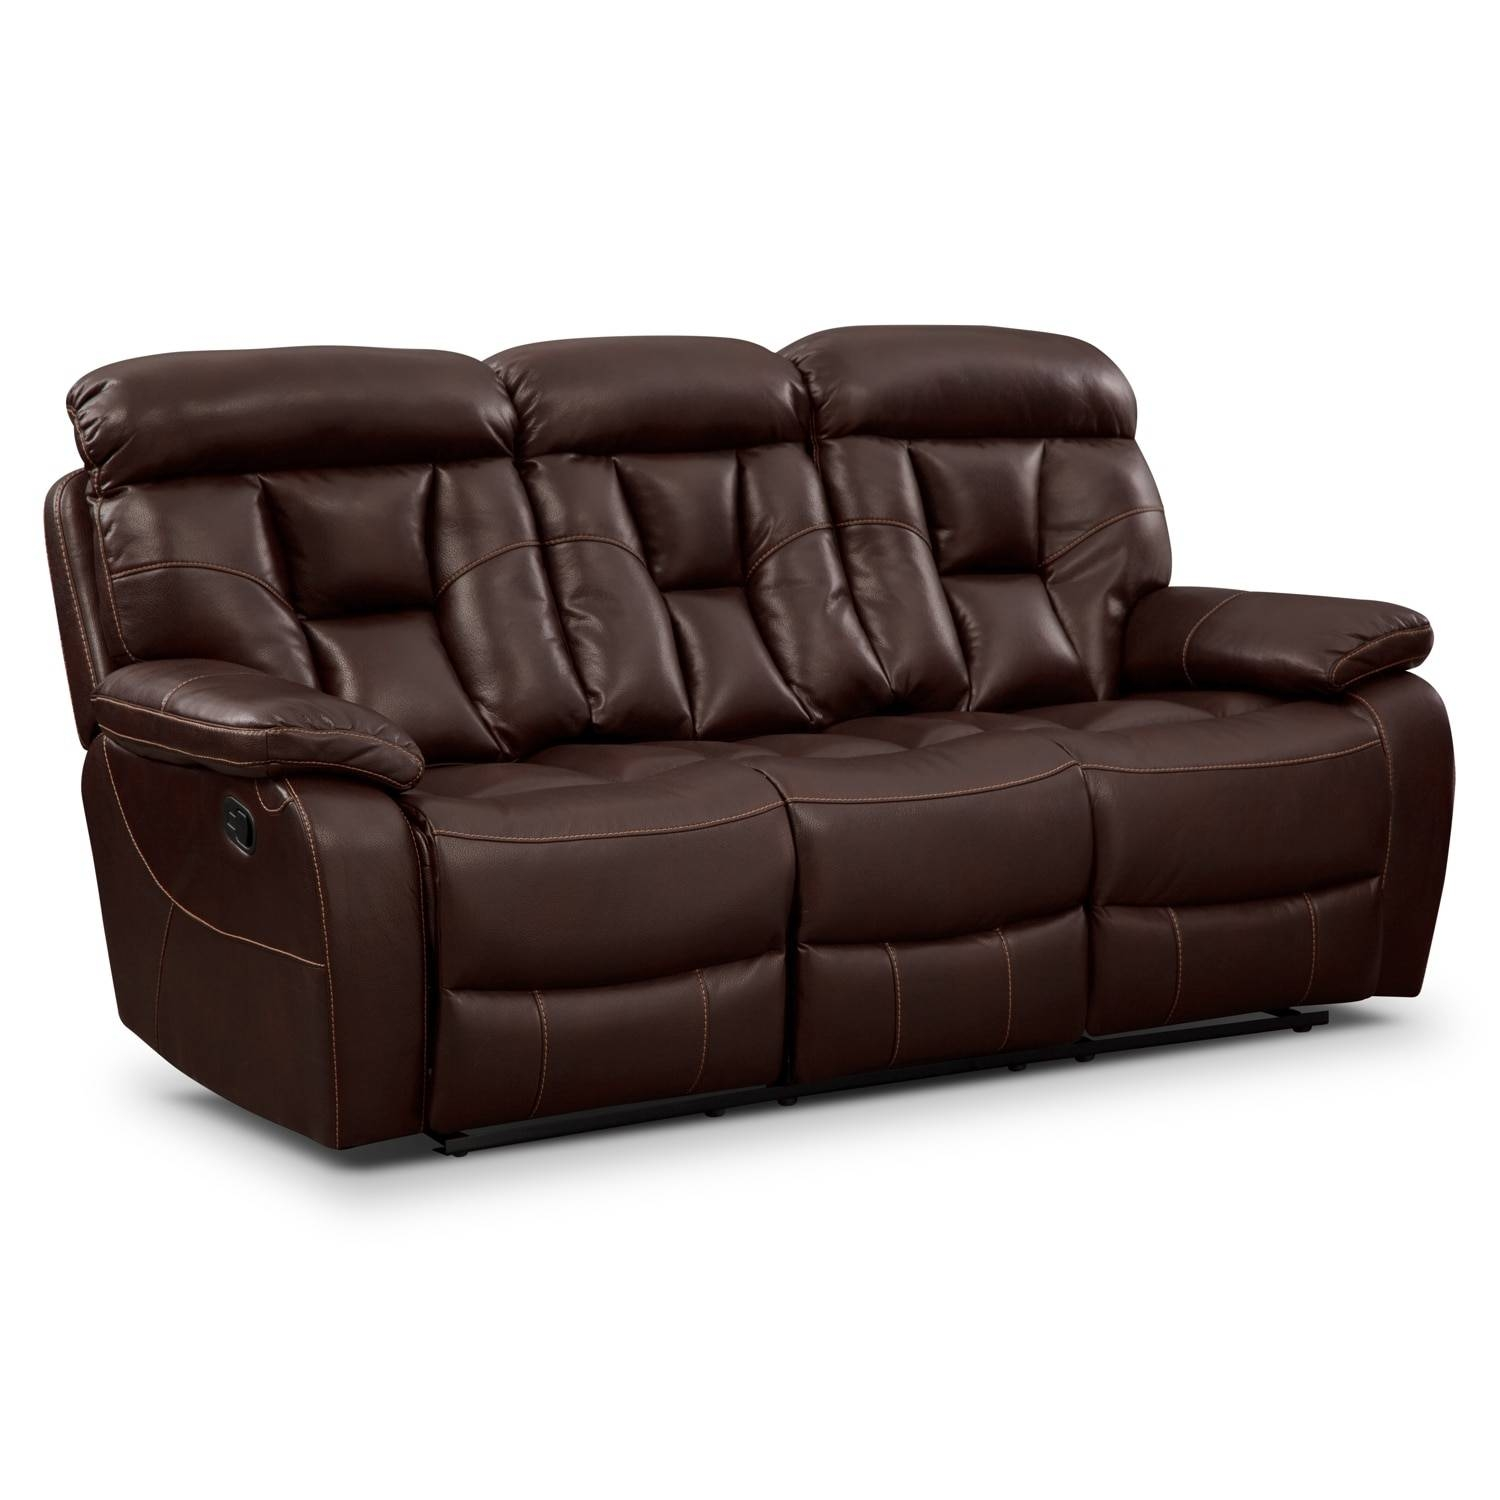 Sofas & Couches | Living Room Seating | Value City Furniture with regard to Recliner Sofa Chairs (Image 30 of 30)